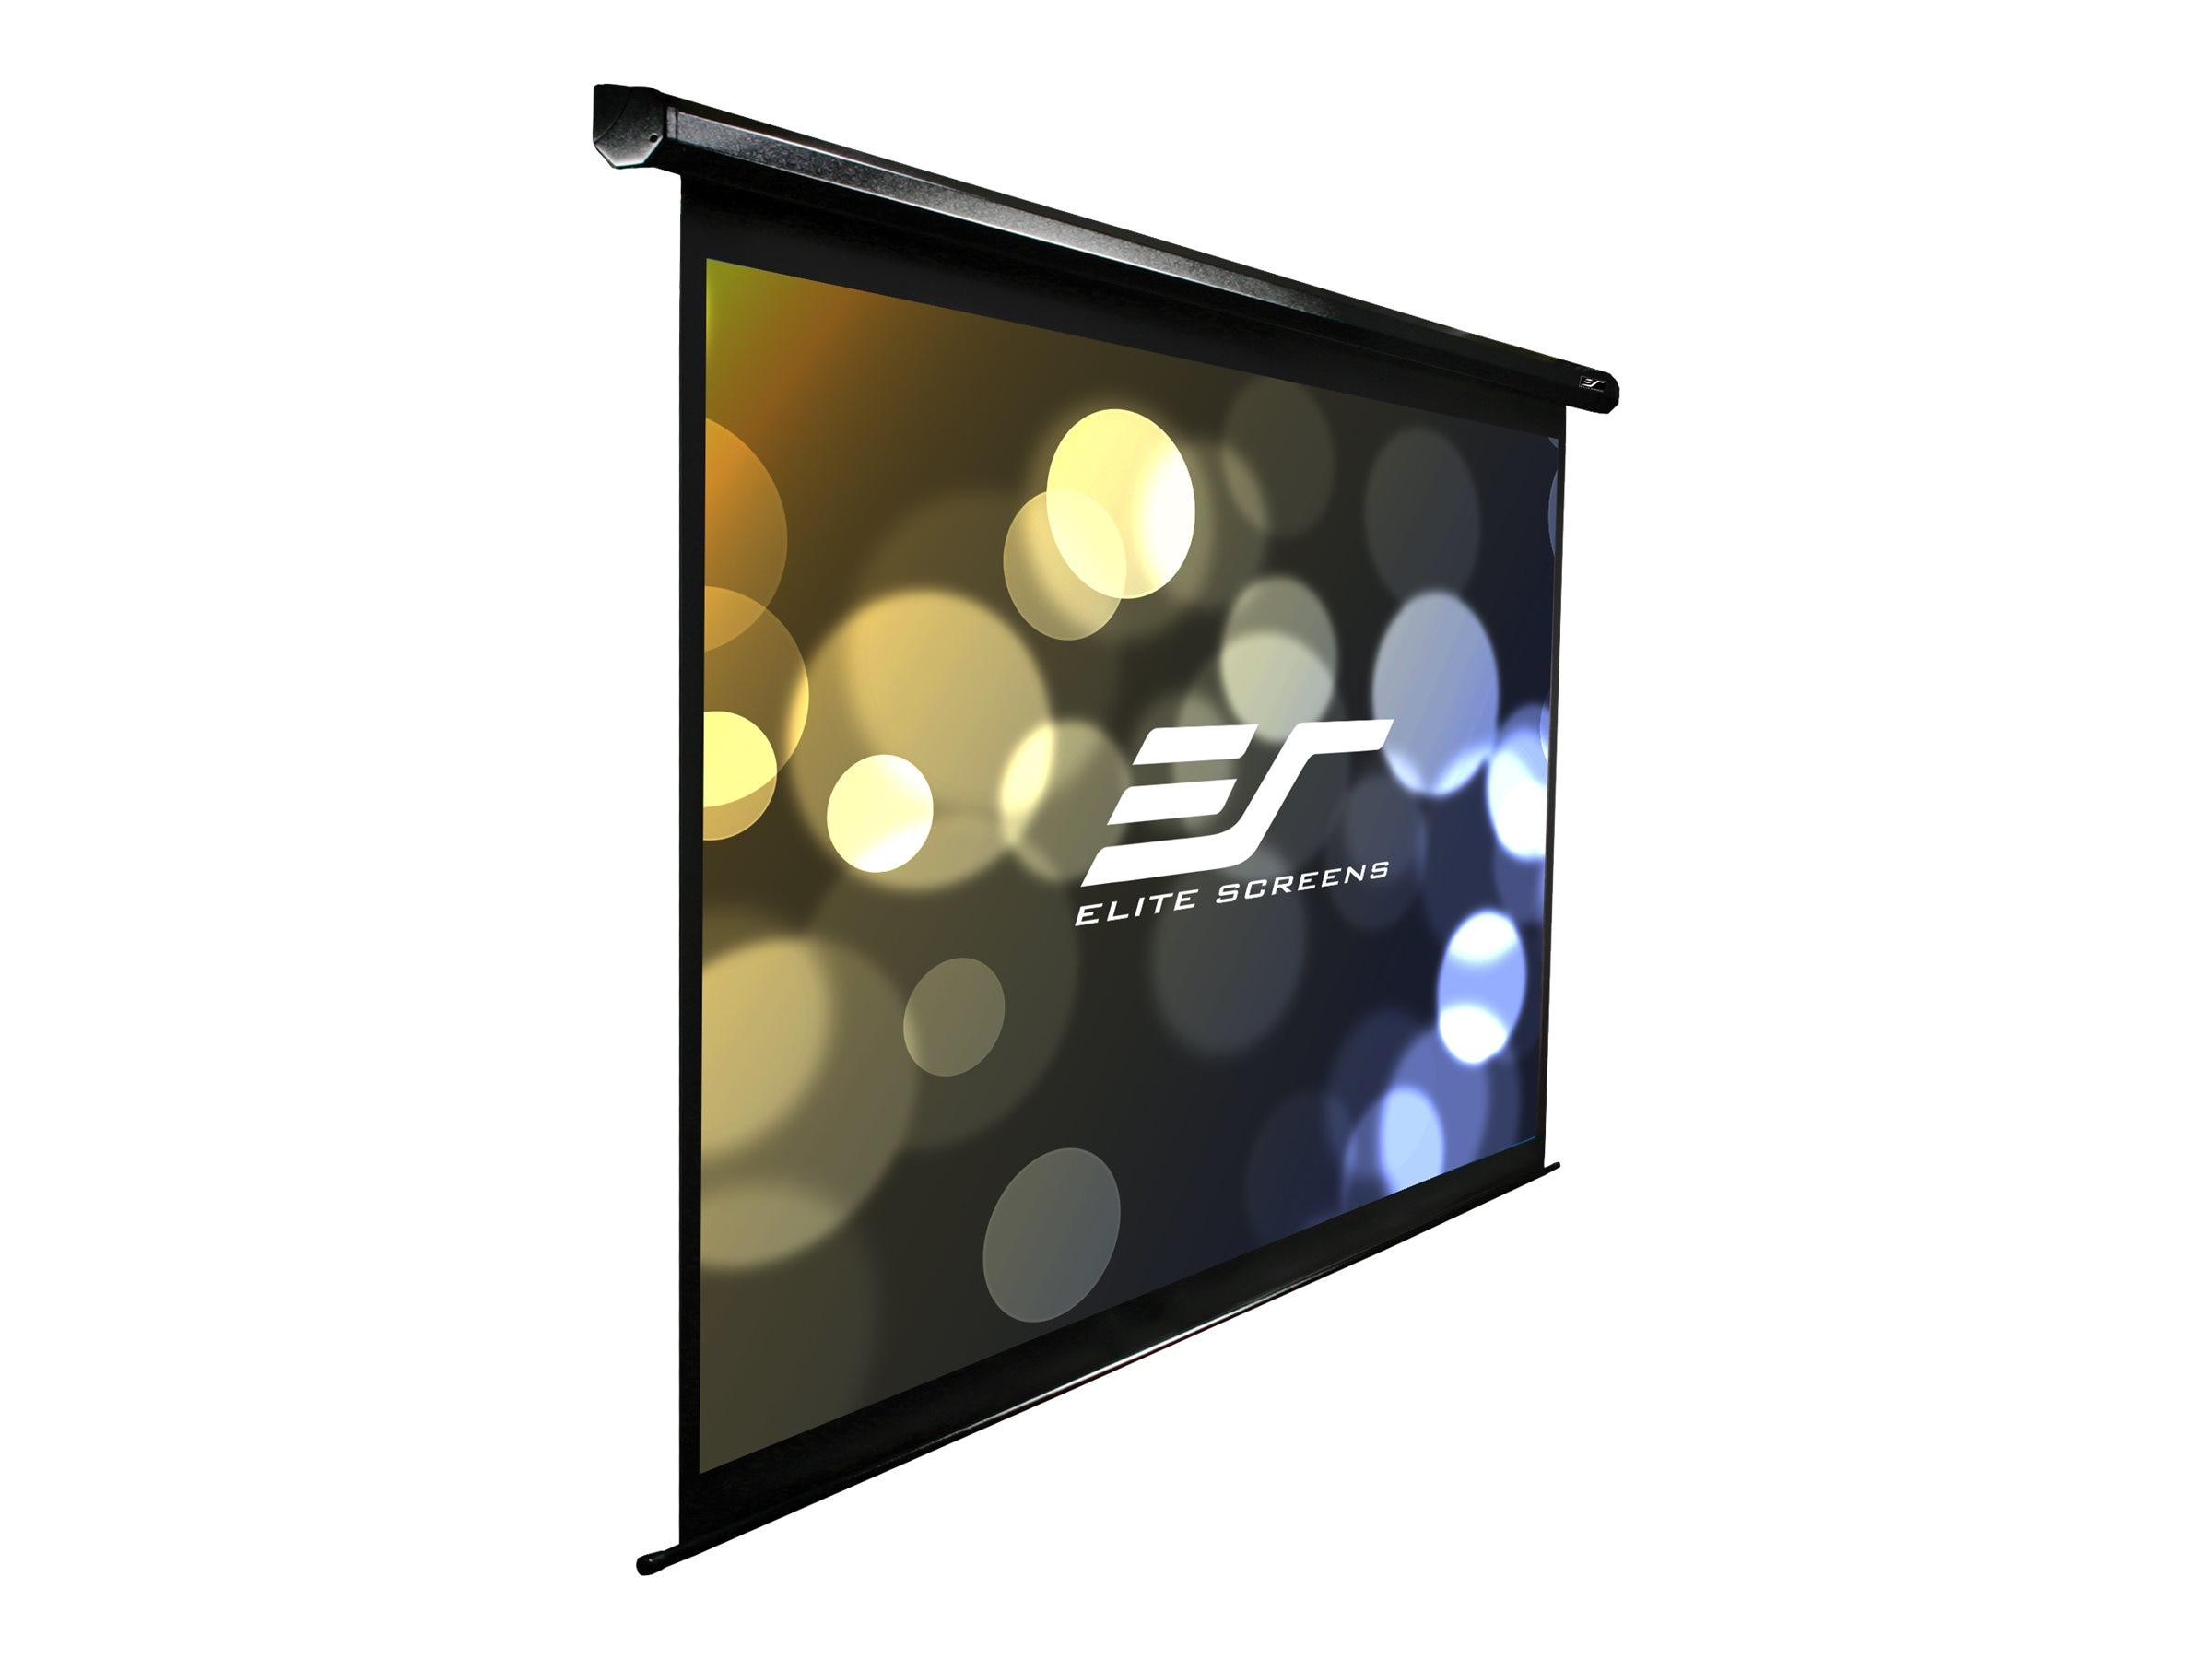 Elite VMax 2 Projection Screen, MaxWhite, 4:3, 92in (Free Mount after MIR), VMAX92UWV2, 9103461, Projector Screens